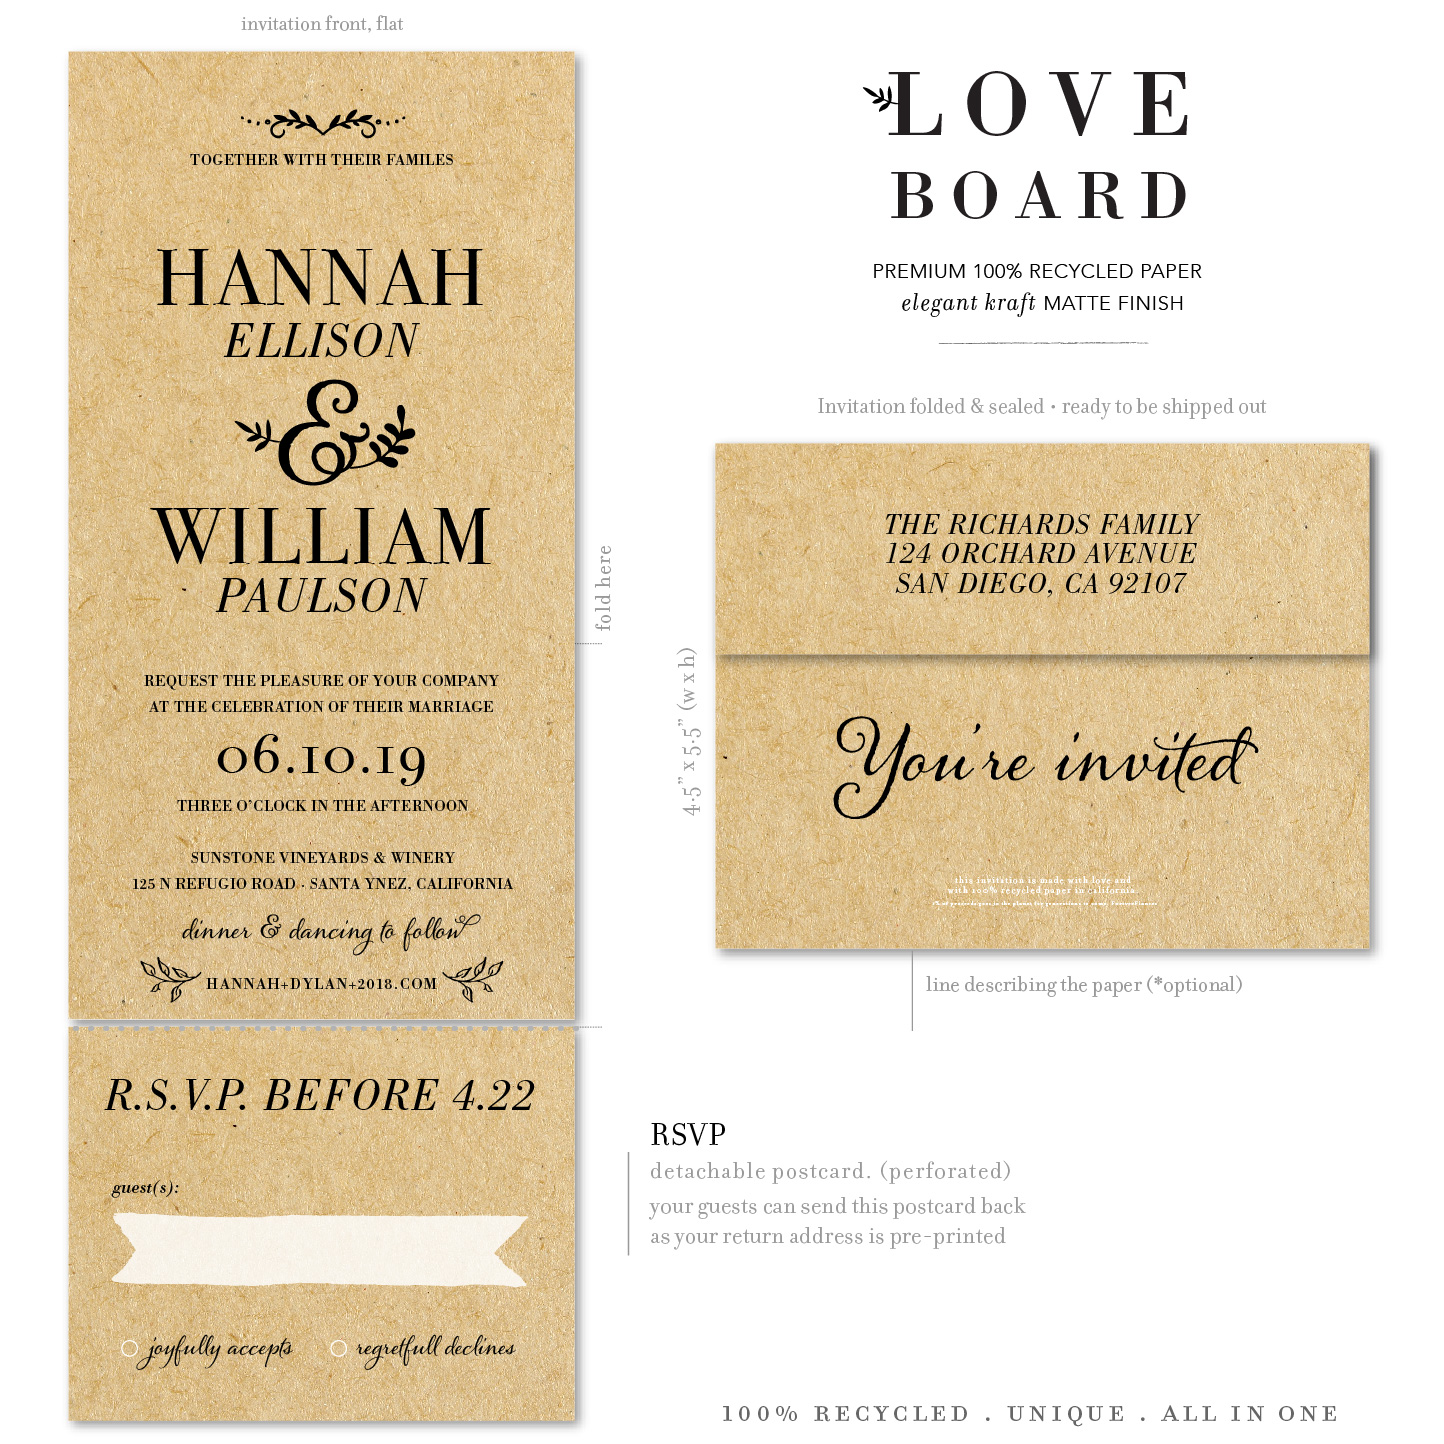 Love Board kraft paper send and sealed invitations